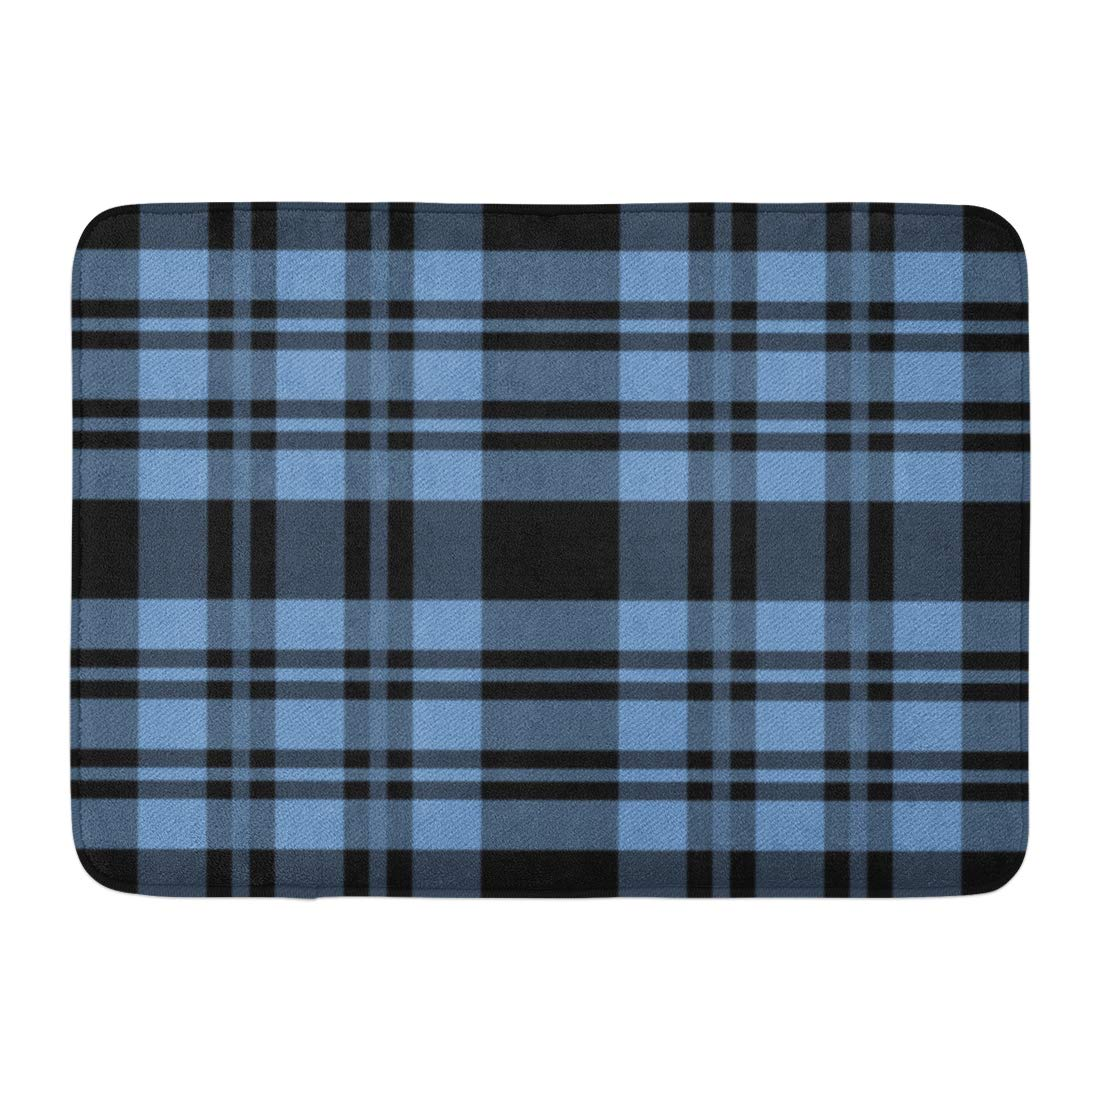 GODPOK White Check Green British Tartan Plaid Pattern